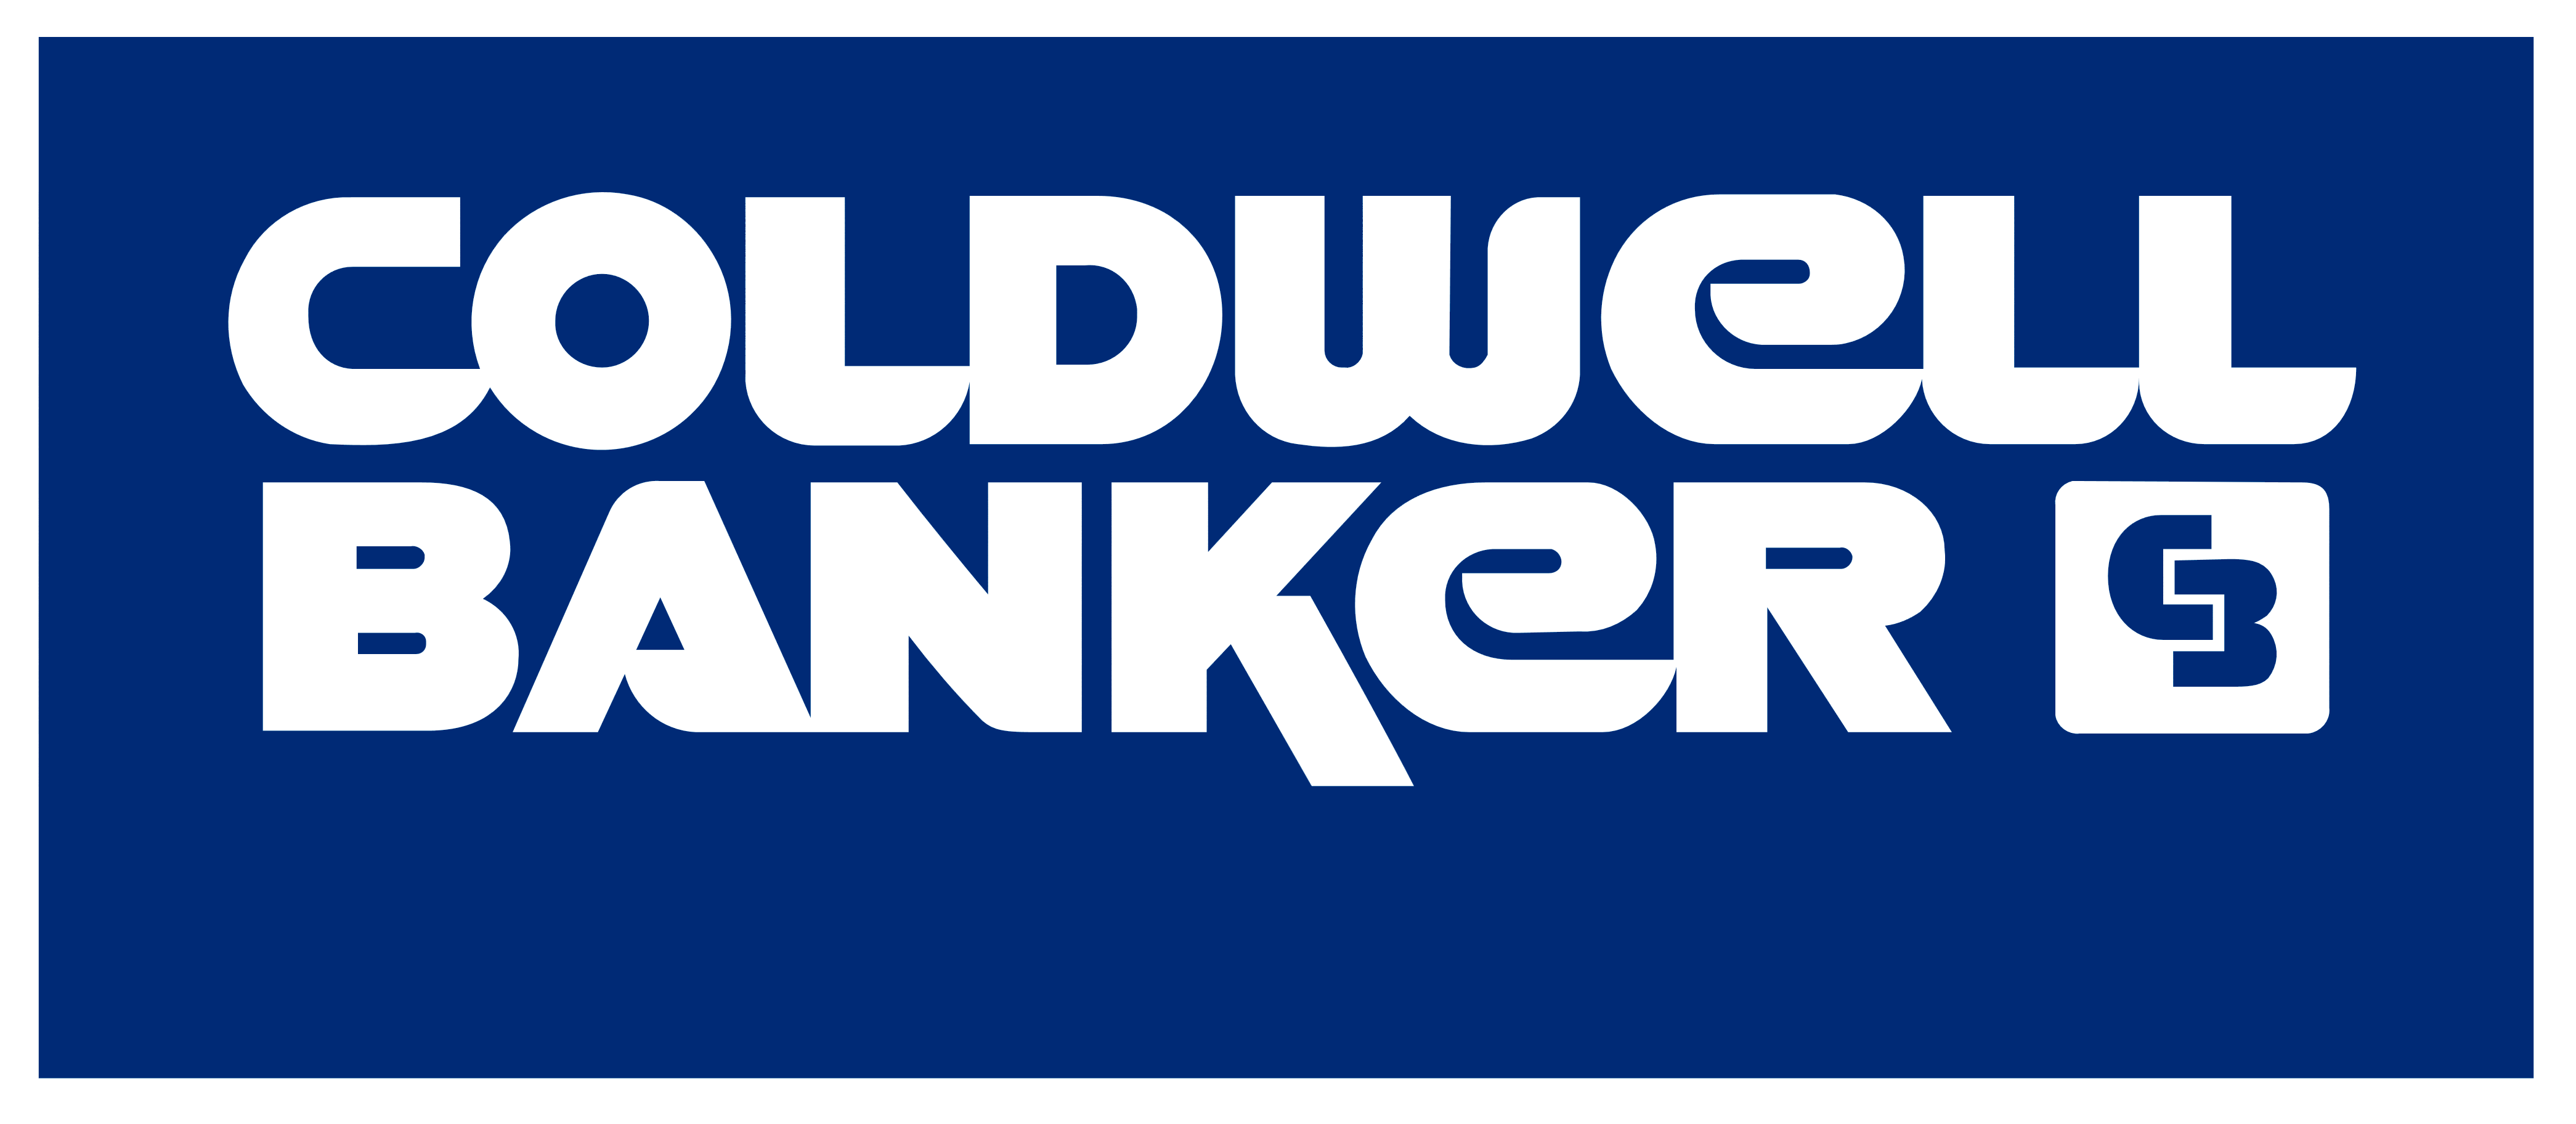 coldwell banker logos download rh logos download com coldwell banker logos download coldwell banker logo vector